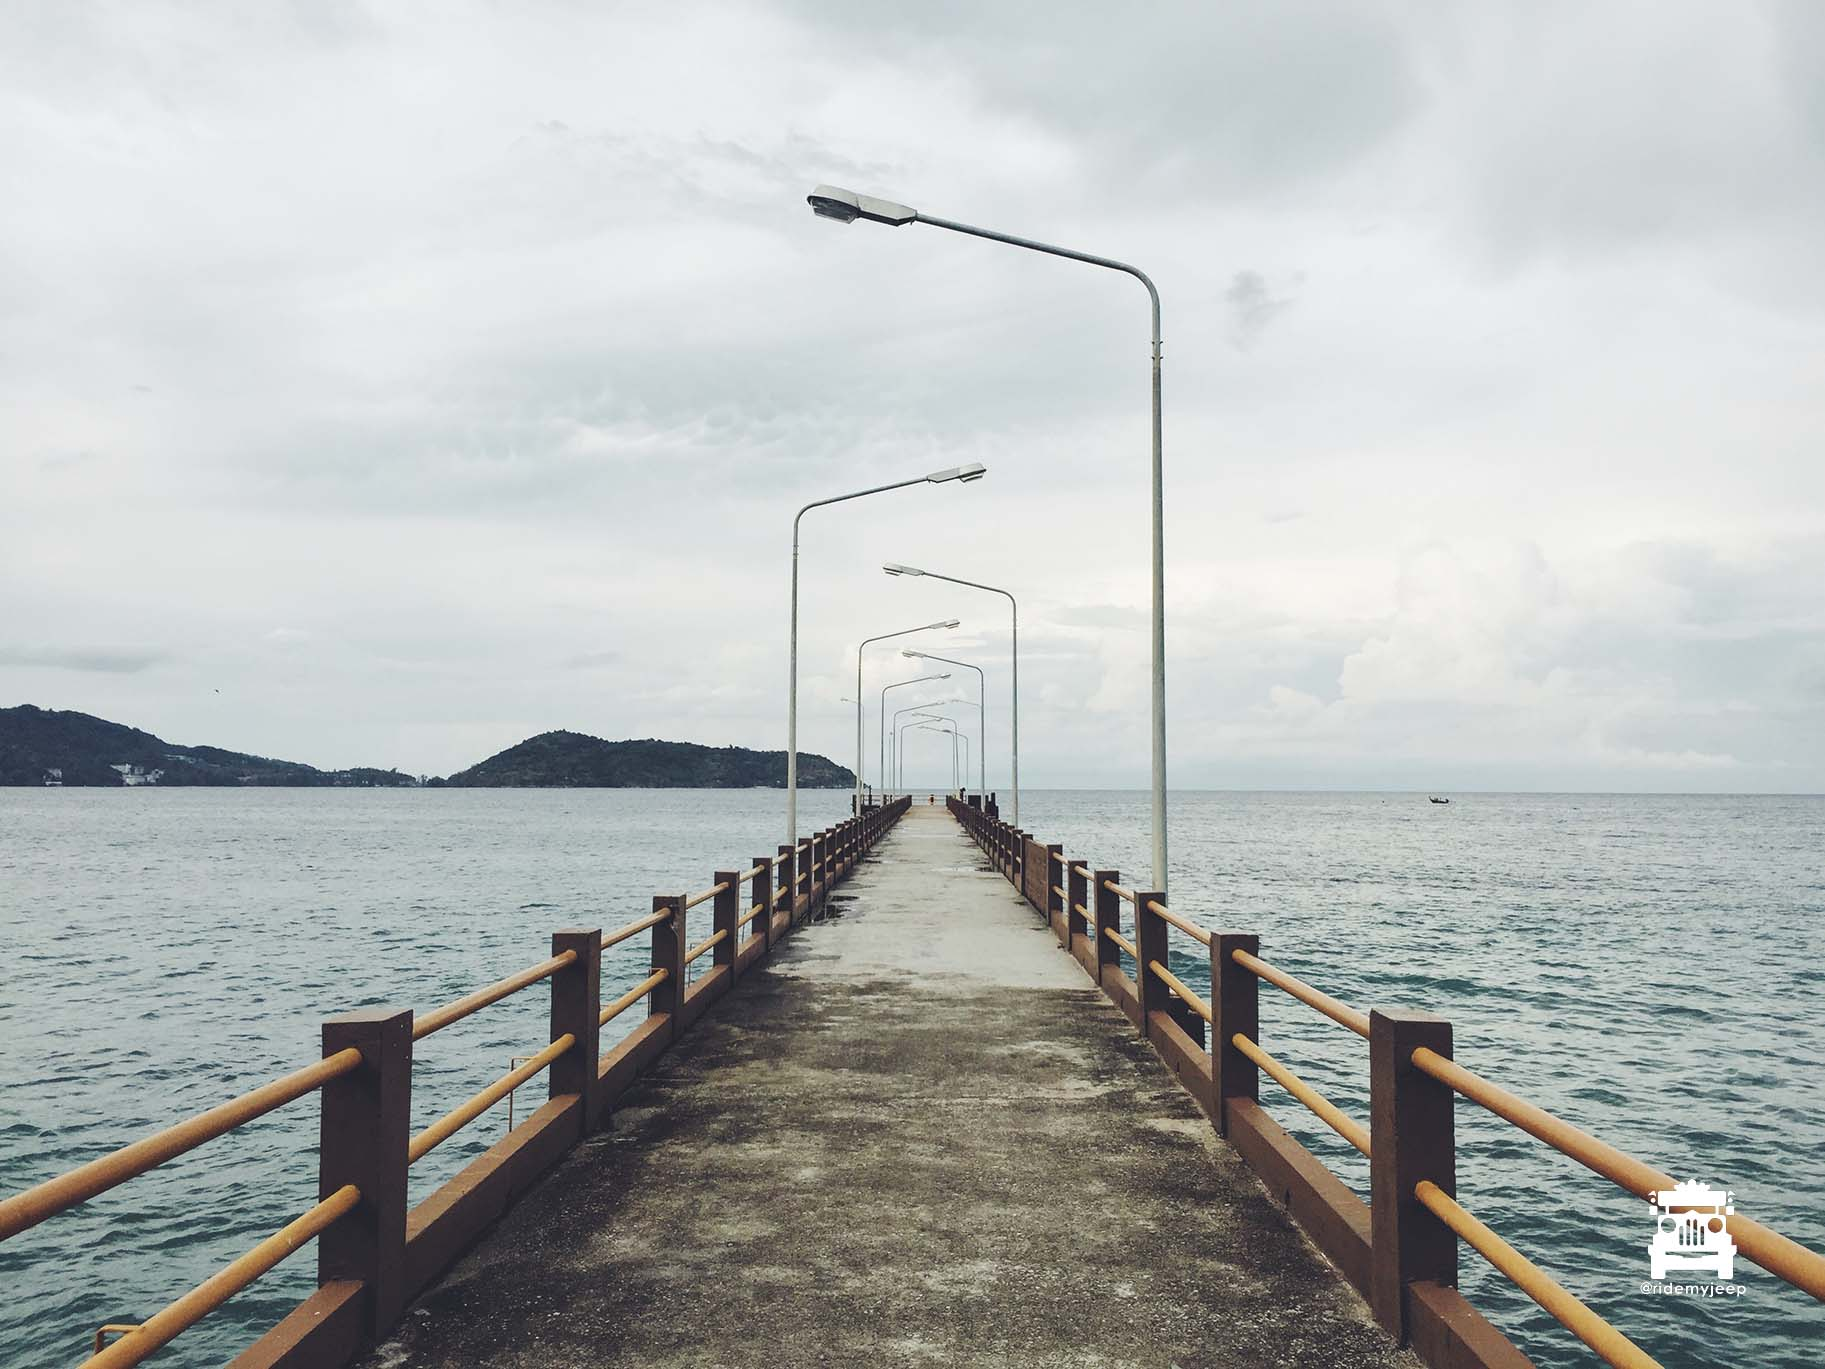 The 'abandoned' pier